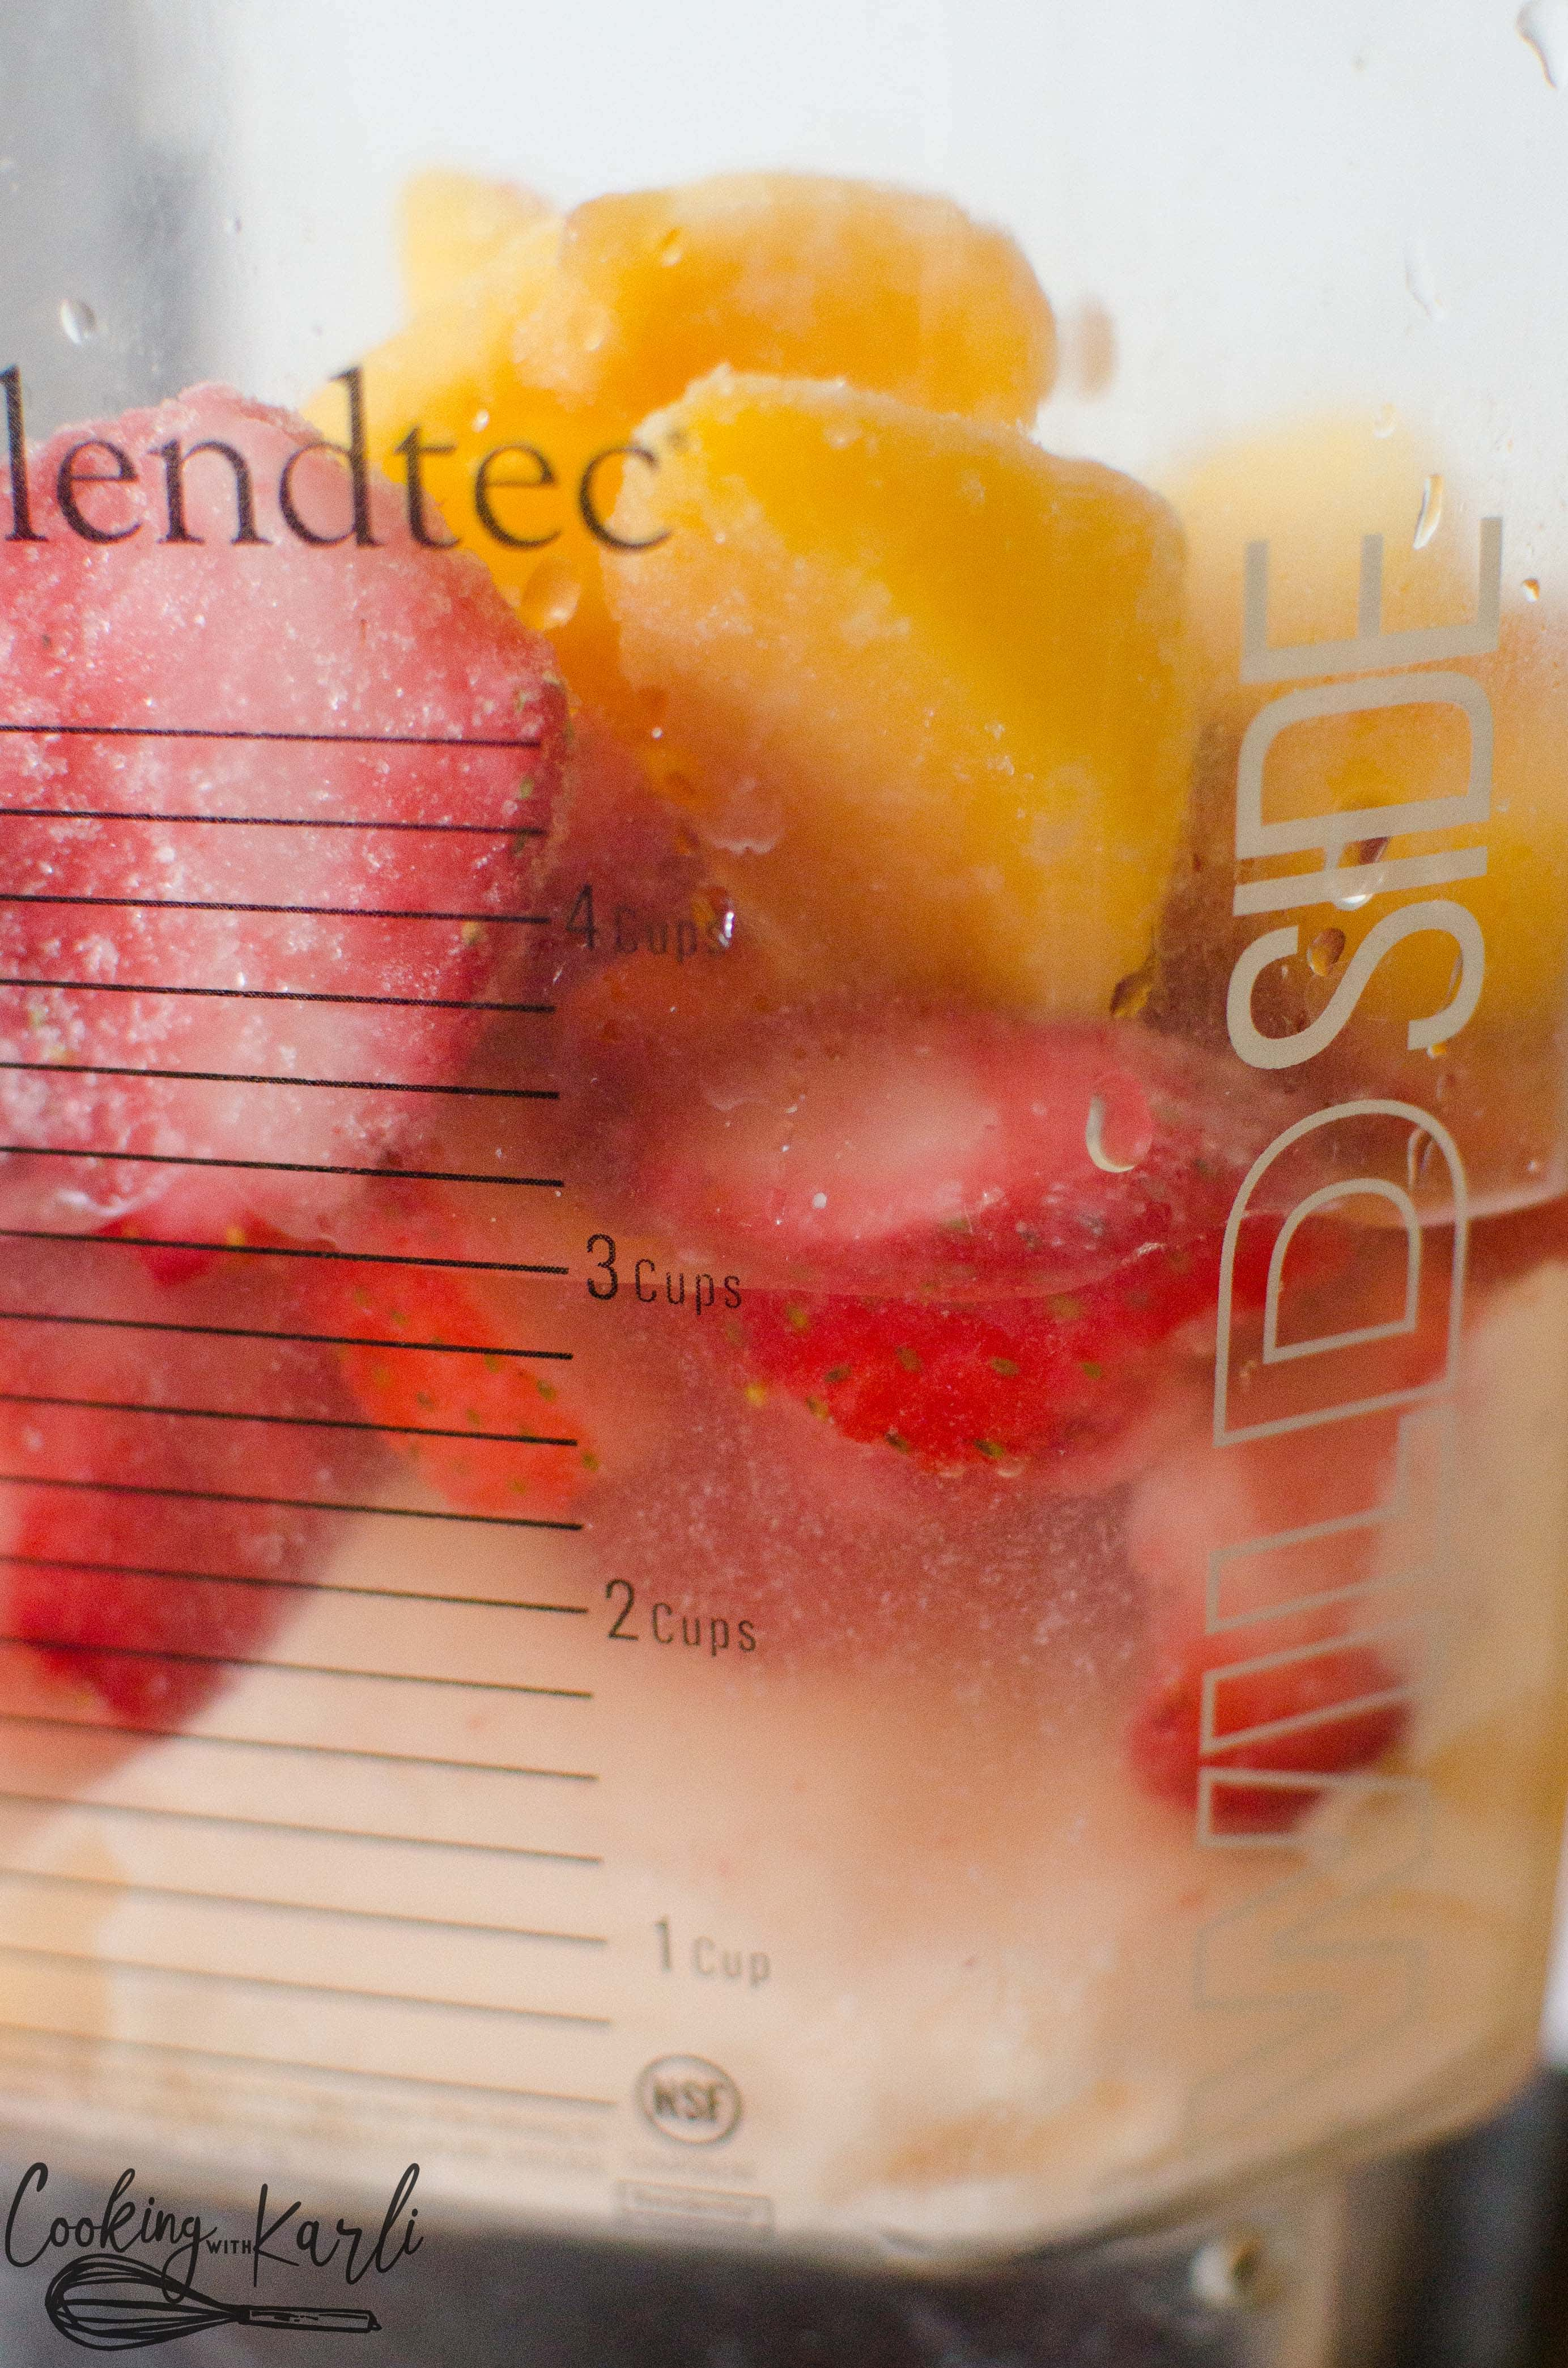 Frozen fruit, yogurt and juice are the ingredients for a fruit smoothie.